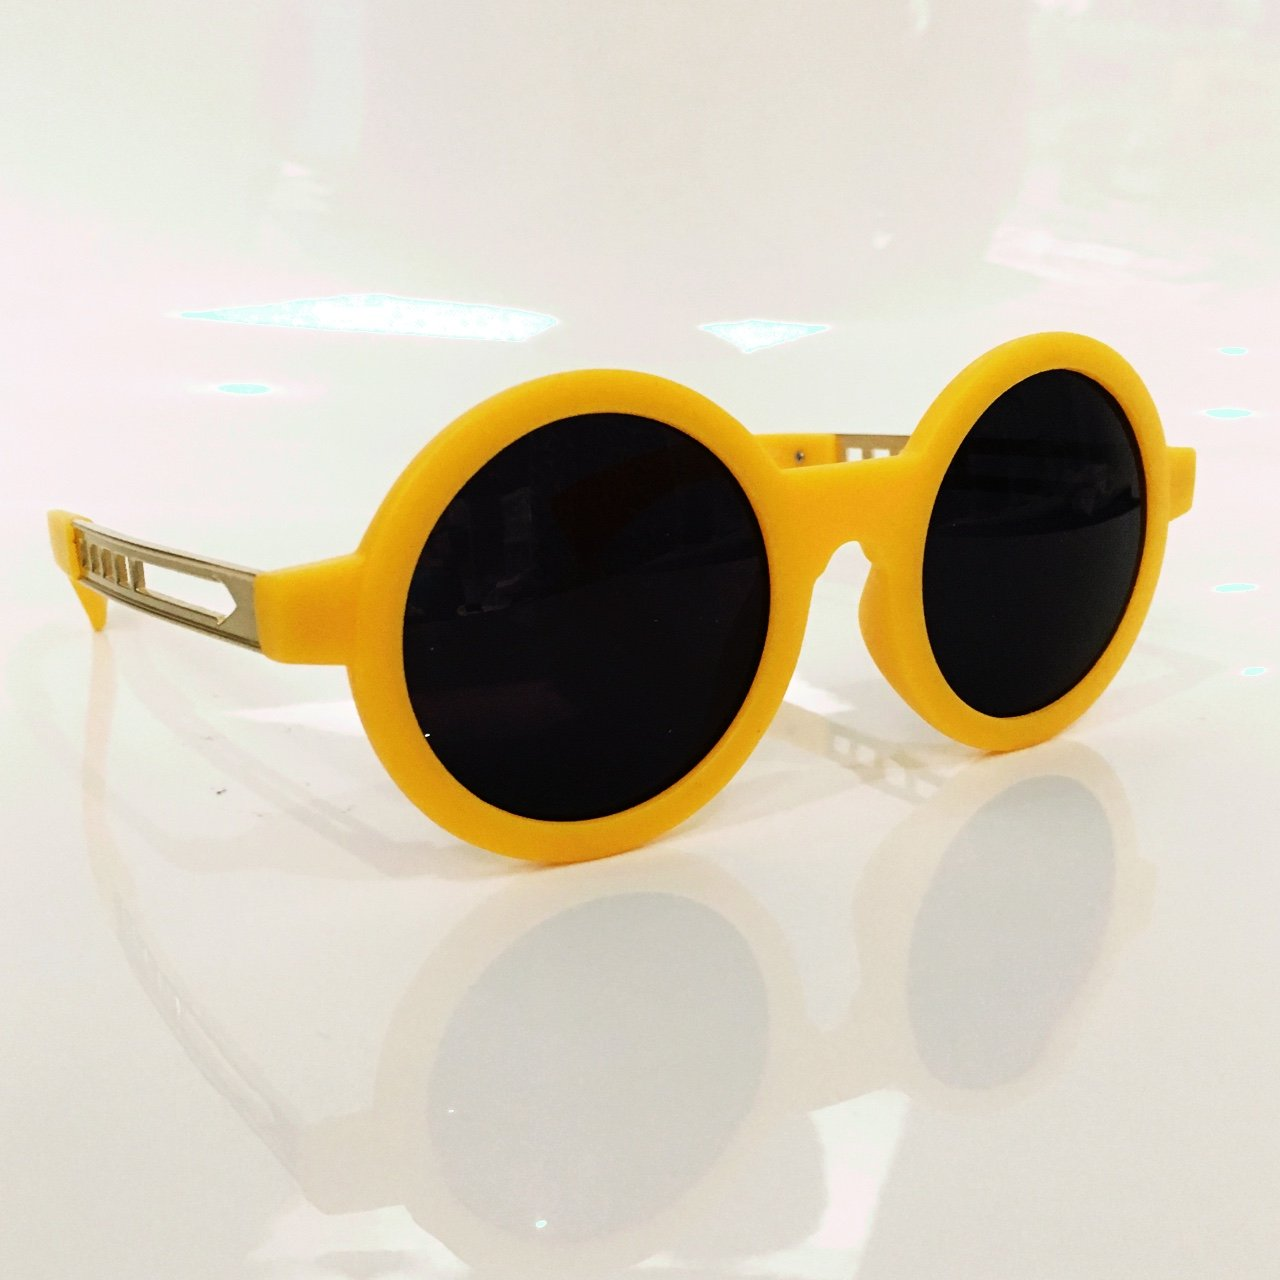 7a51c7575d New vintage style round sunglasses in yellow. Gold arrow UK - Depop